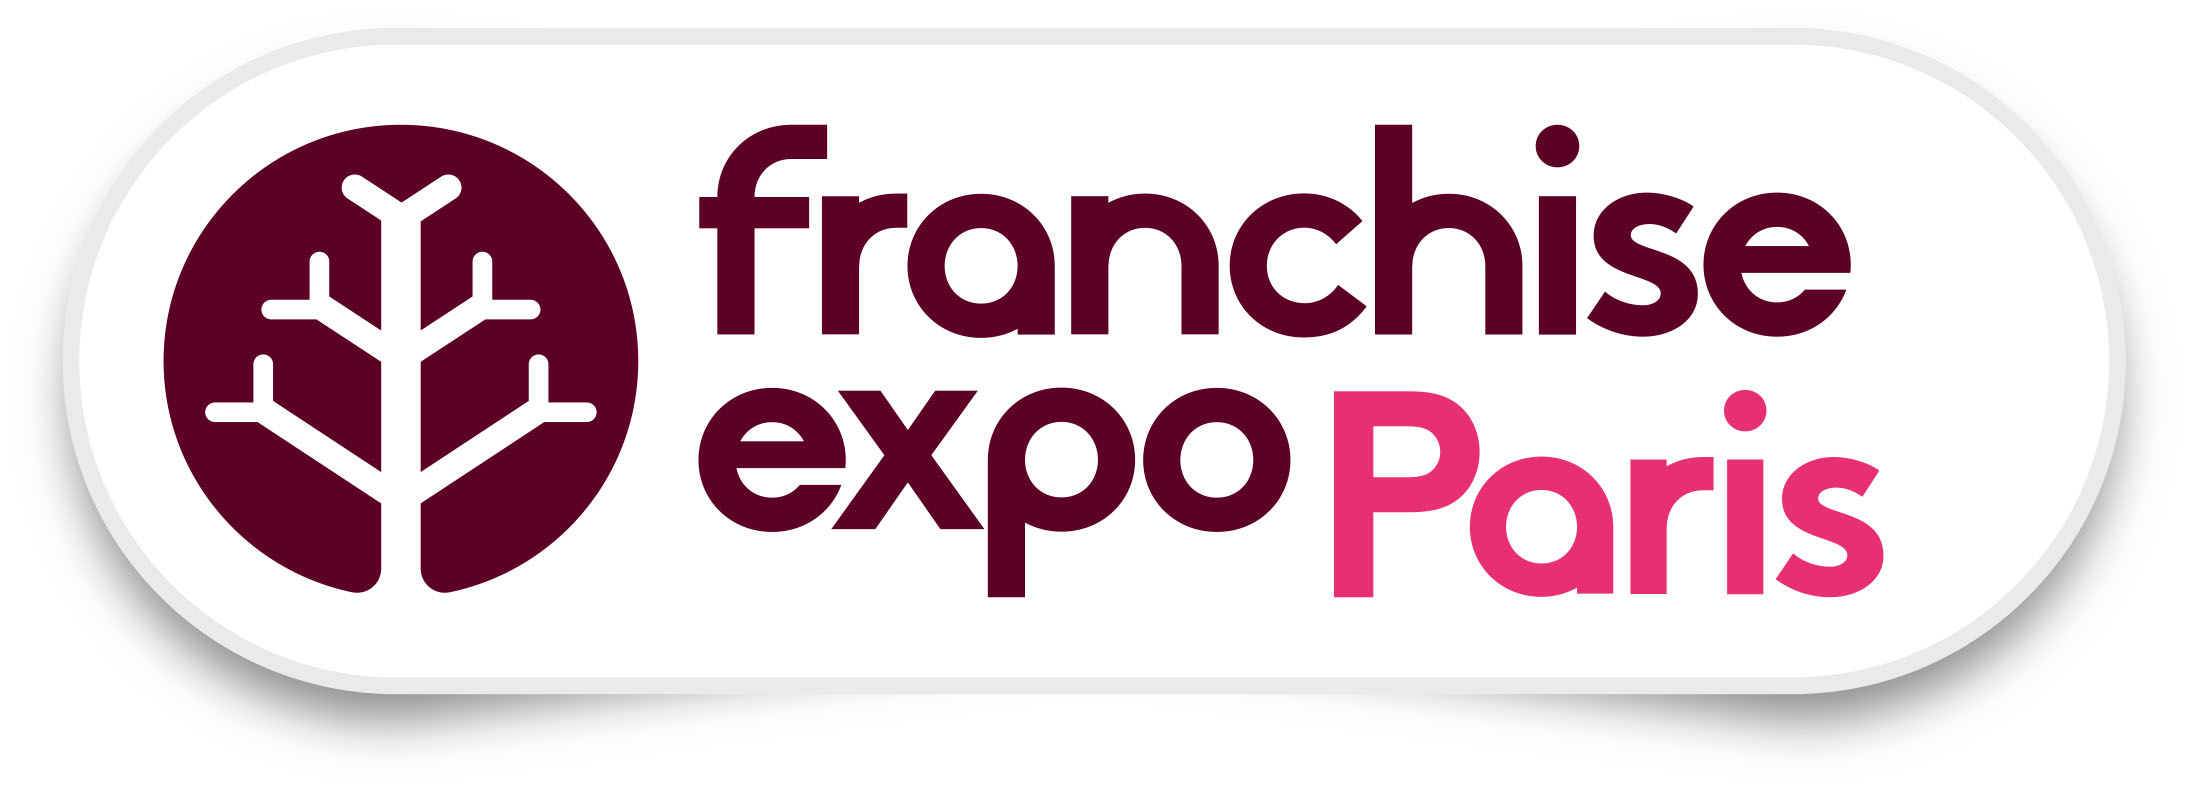 logo franchise expo2018